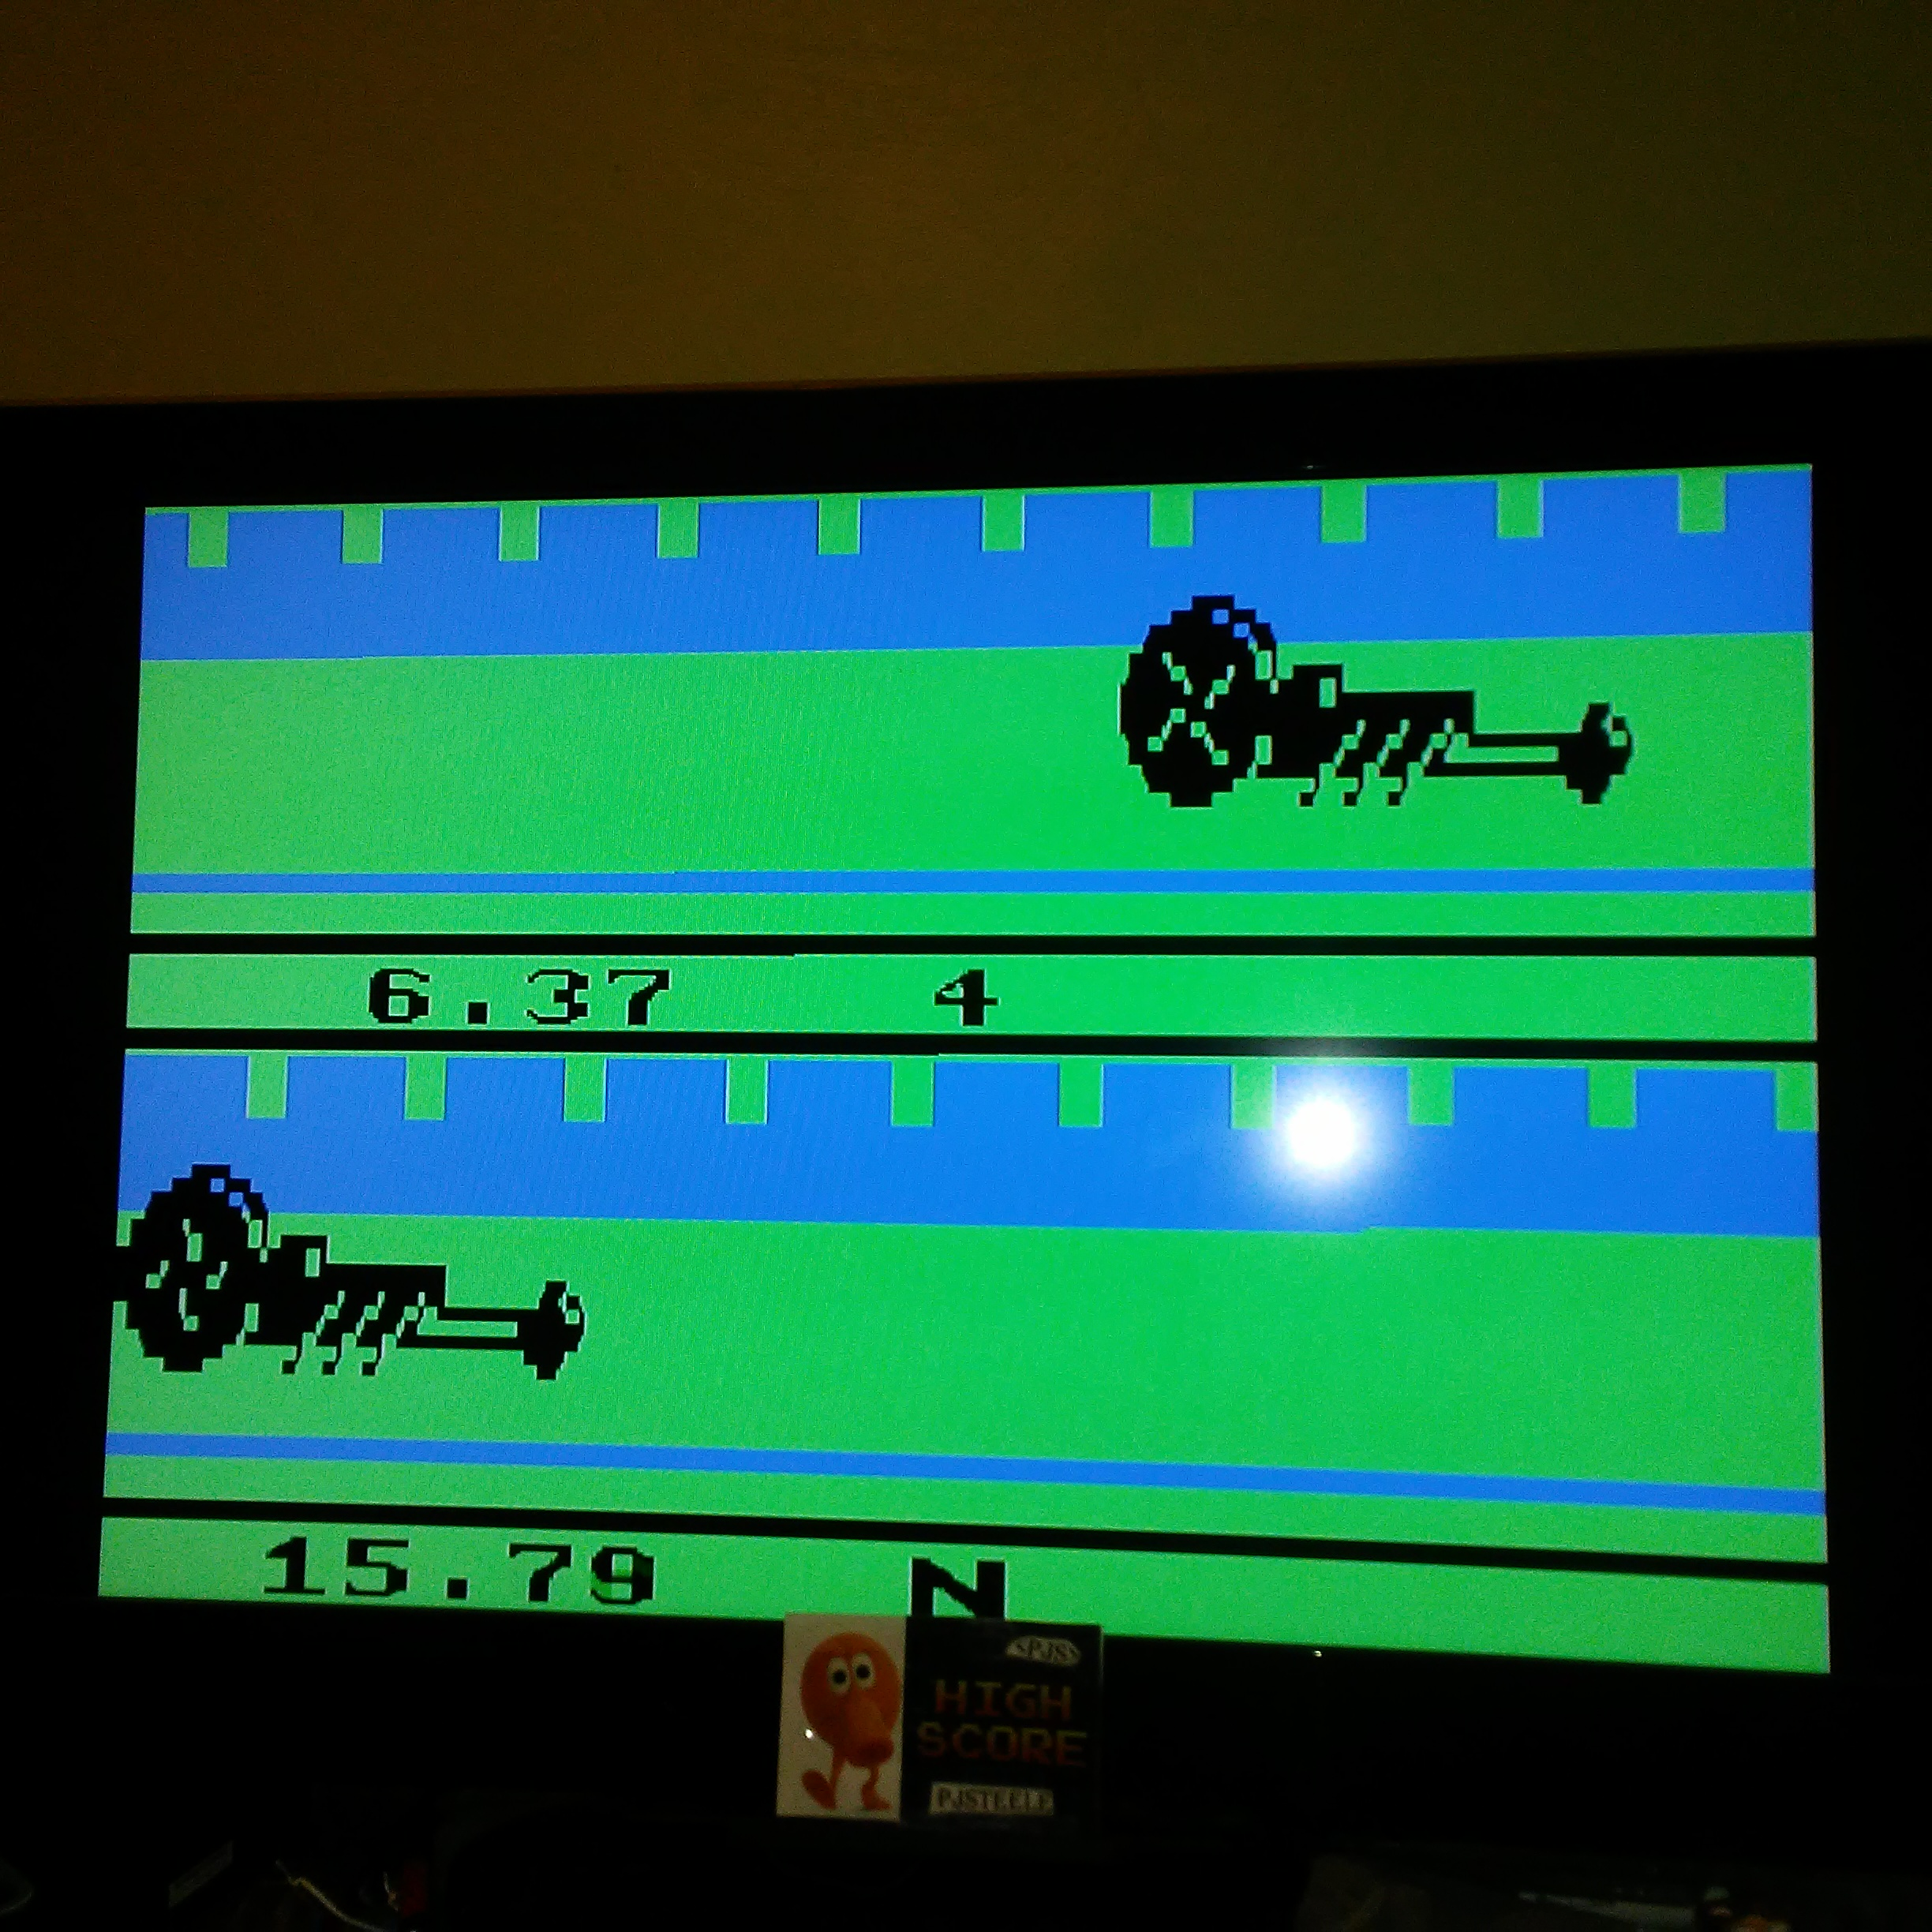 Pjsteele: Activision Anthology: Dragster [Game 1B] (GBA Emulated) 0:00:06.37 points on 2017-12-04 21:36:09